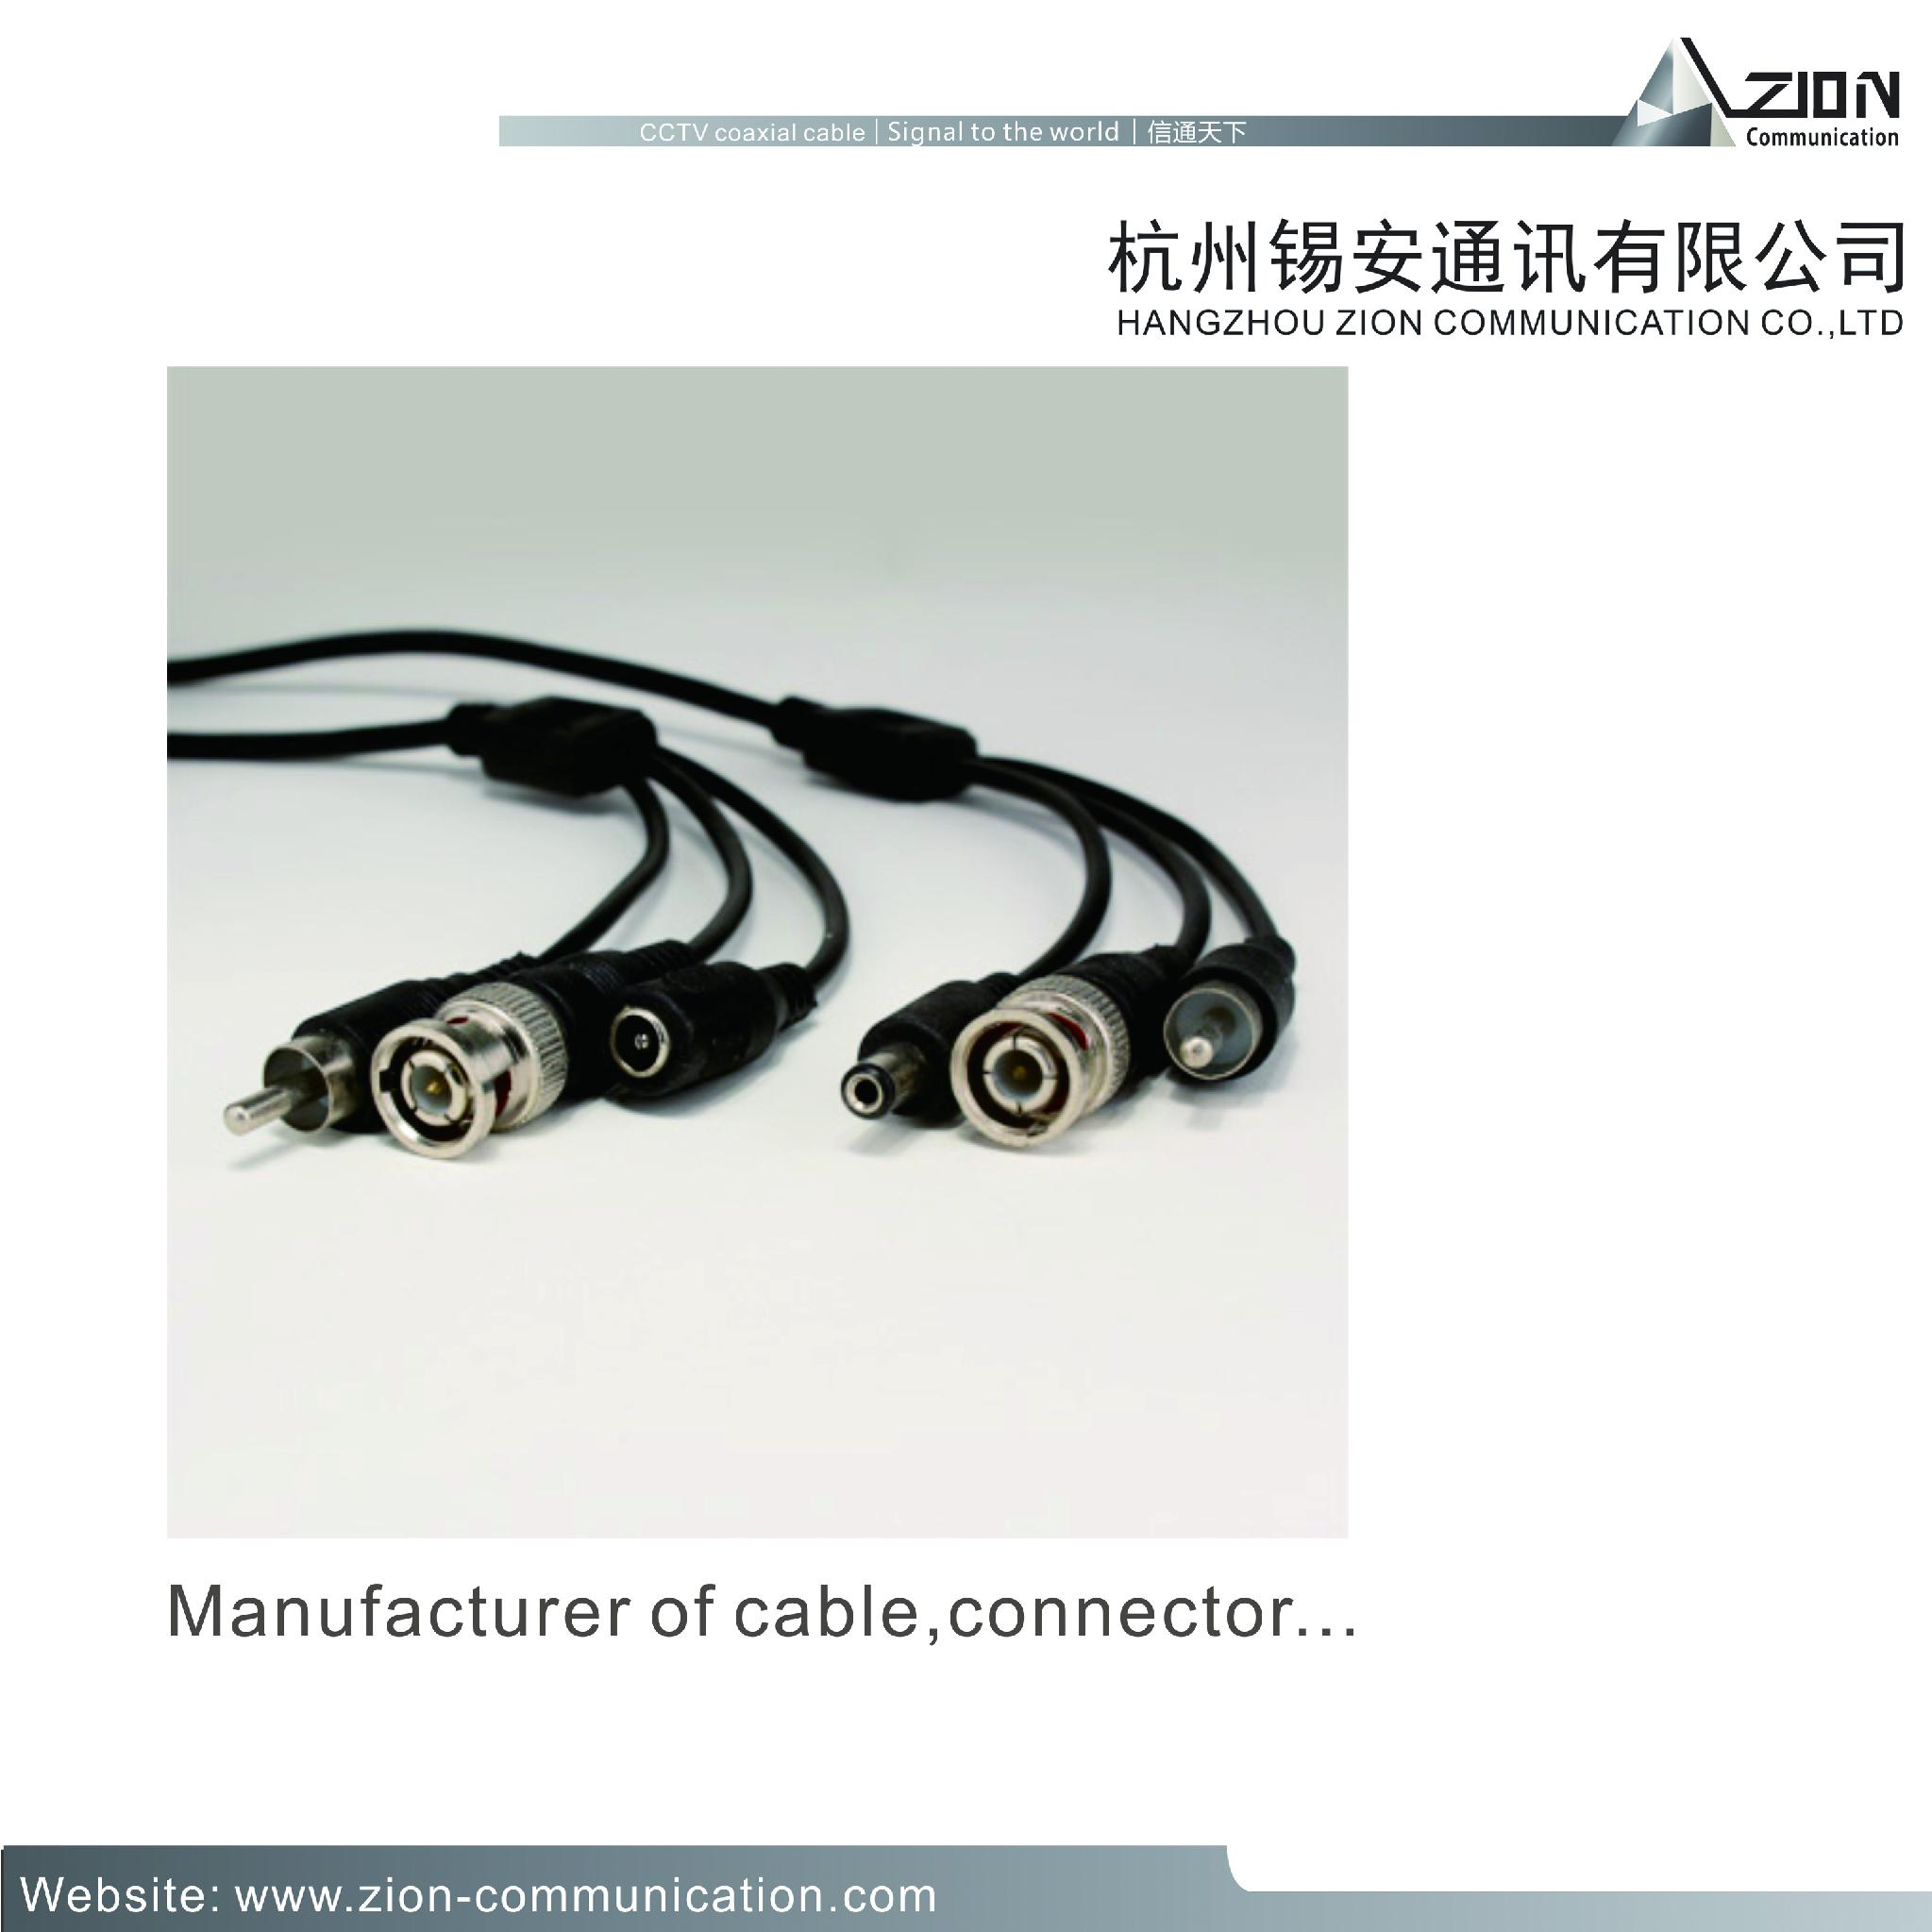 high quality RG6/U 18AWG / 2C CCTV Coaxial Cable 95%CCTV POWER CABLE for CAMERA 5